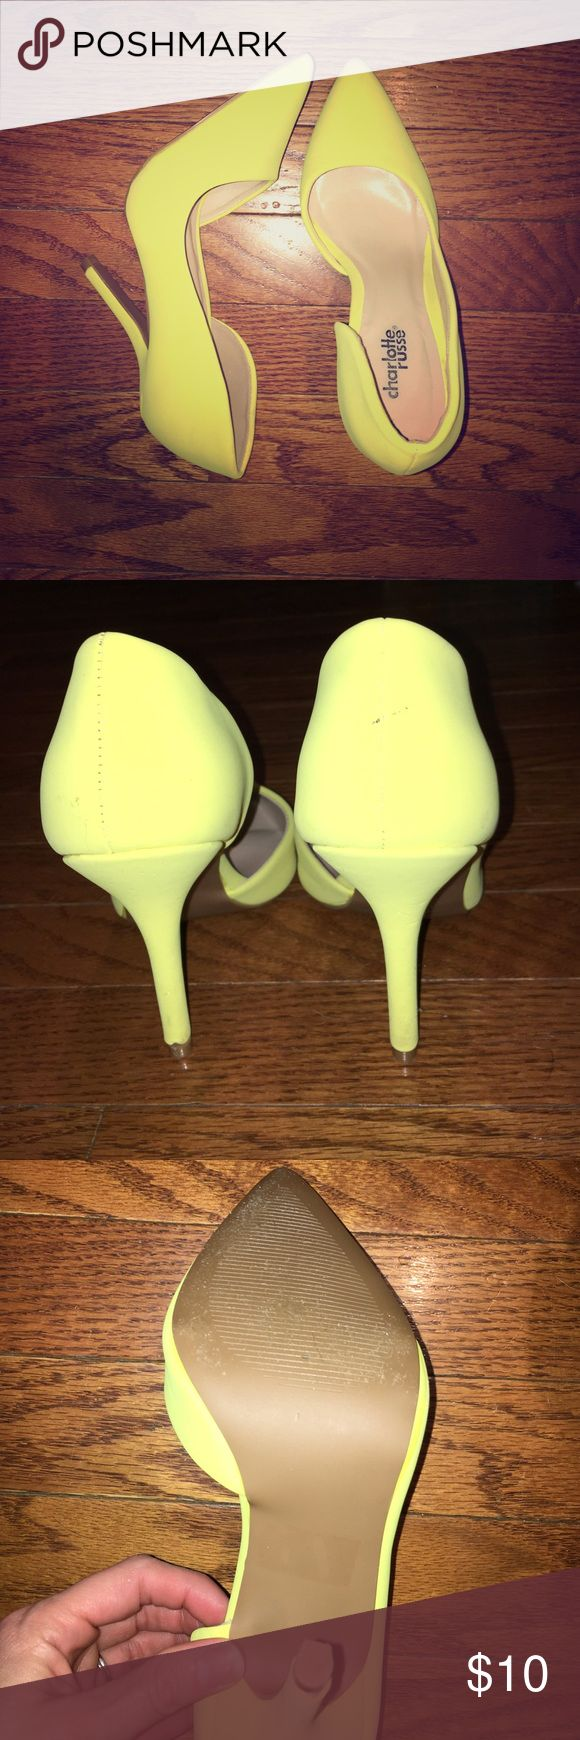 "Charlotte Russe neon high heeled pumps Fun and sexy bright neon yellow high heeled pumps. These have been worn a few times and do have some wear a couple scuffs but nothing noticeable when wearing them. Size 7 high height approximately between 4"" - 4 1/2"" Charlotte Russe Shoes Heels"